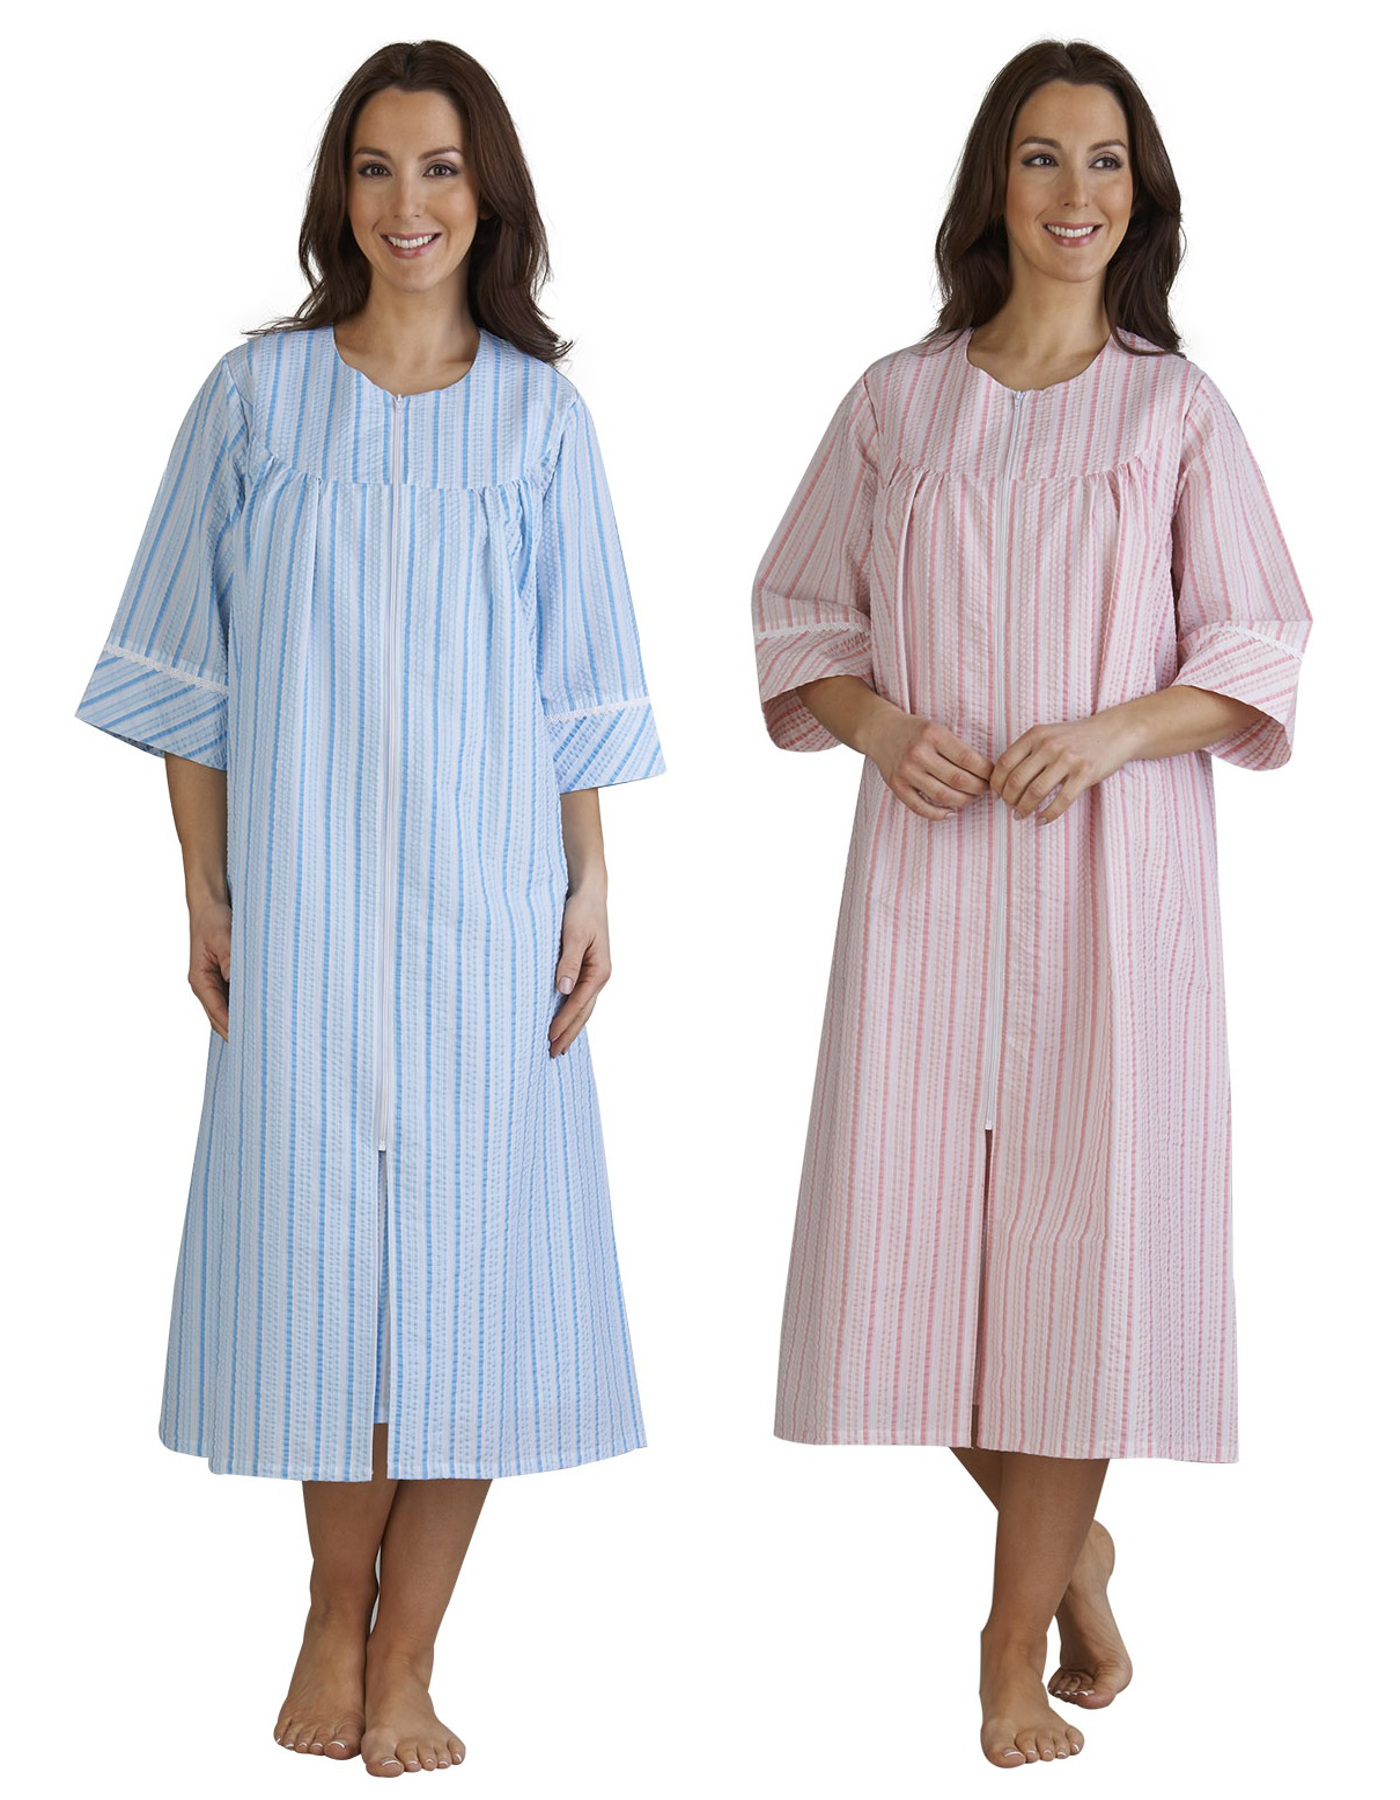 fdd568e995 ... Ladies Zip Front Dressing. Dressing Gowns With Zips - Best Seller Dress  and Gown Review